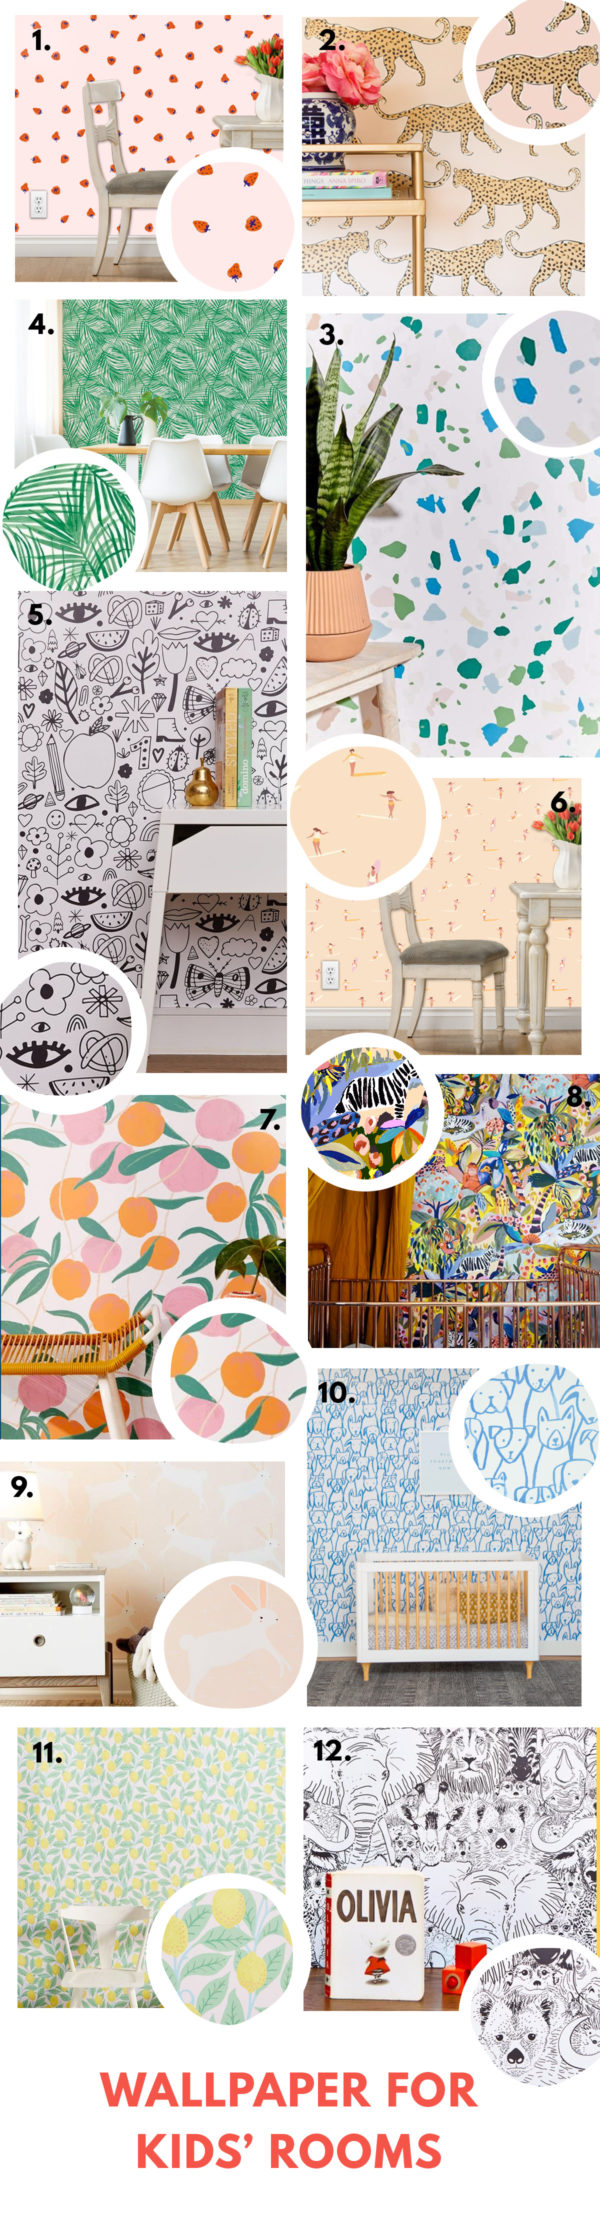 Bold Colorful Wallpaper for Kids Rooms